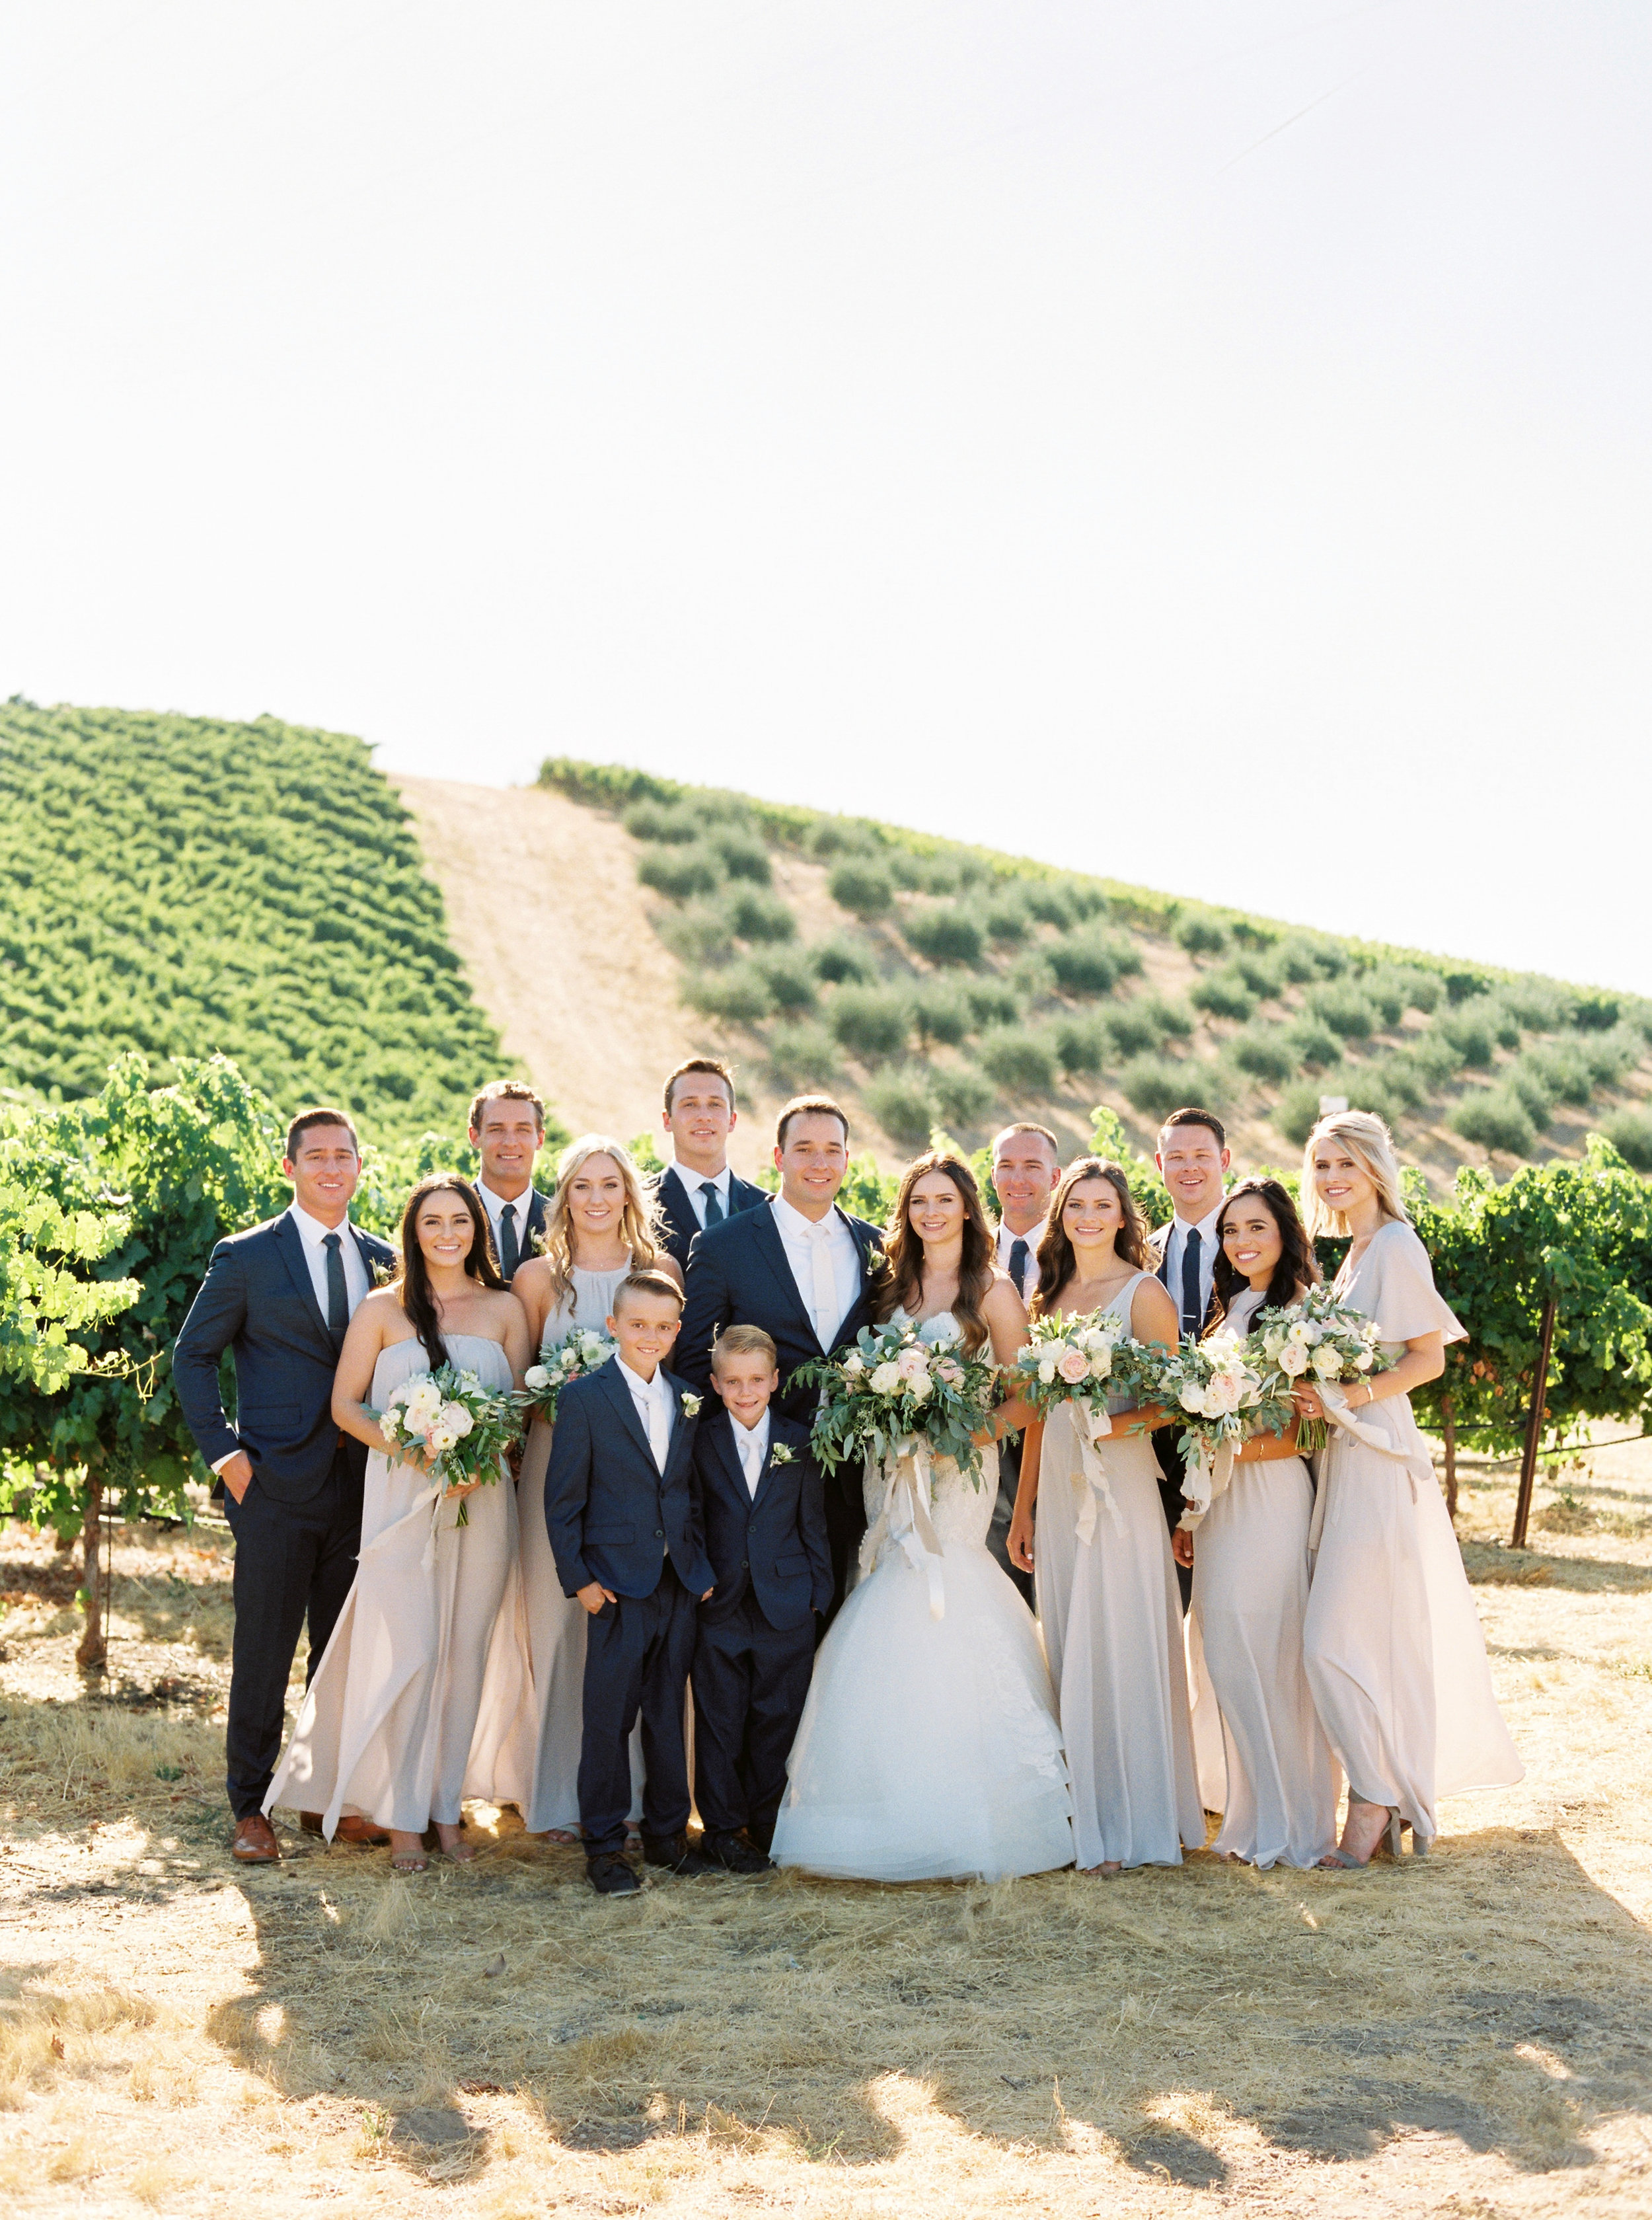 muriettas-well-wedding-in-livermore-california-106.jpg